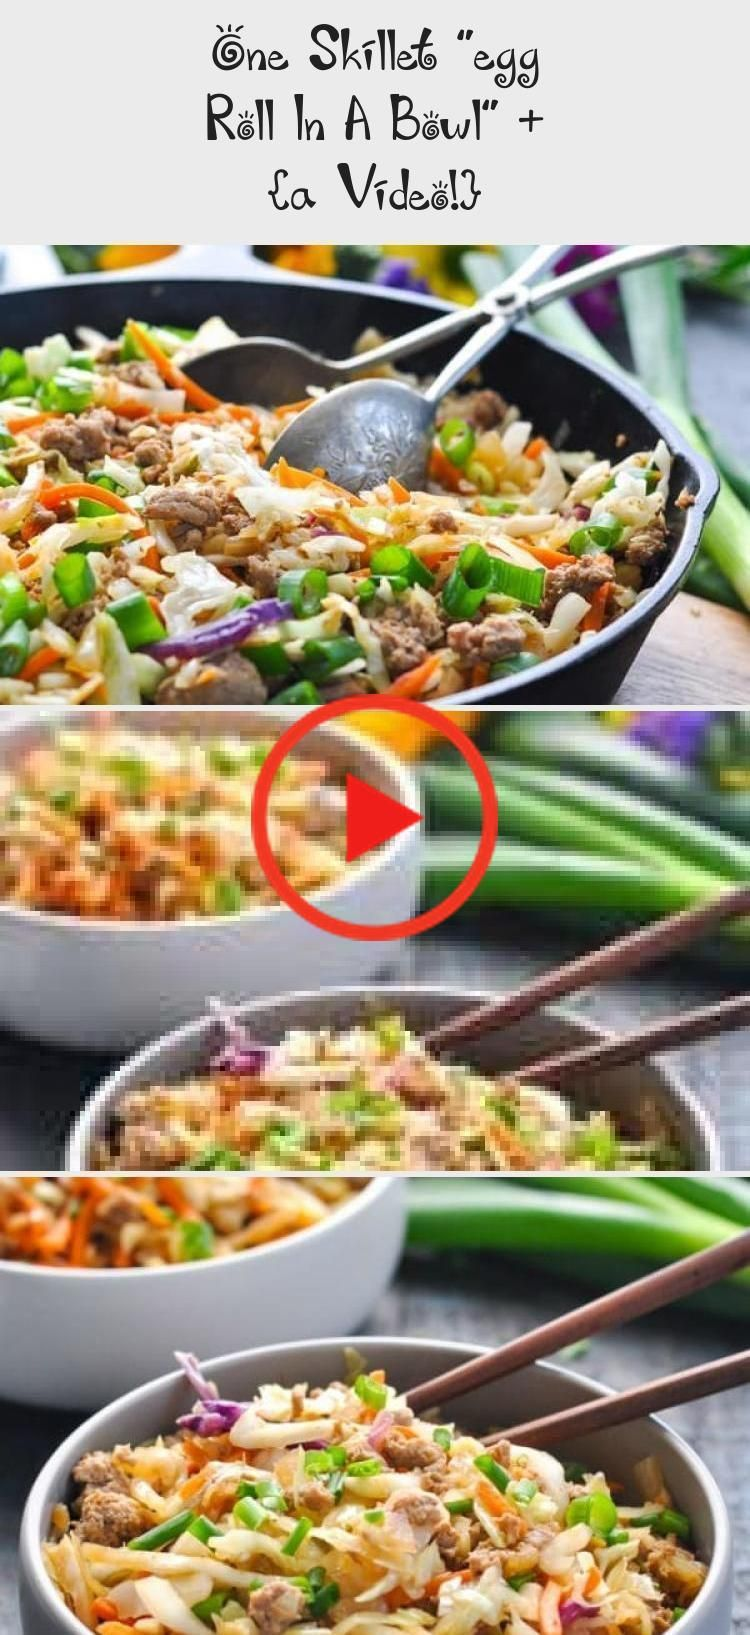 Egg Roll In A Bowl Vegetarian & Egg Roll In A Bowl #eggrollinabowl egg roll in a bowl vegetarian